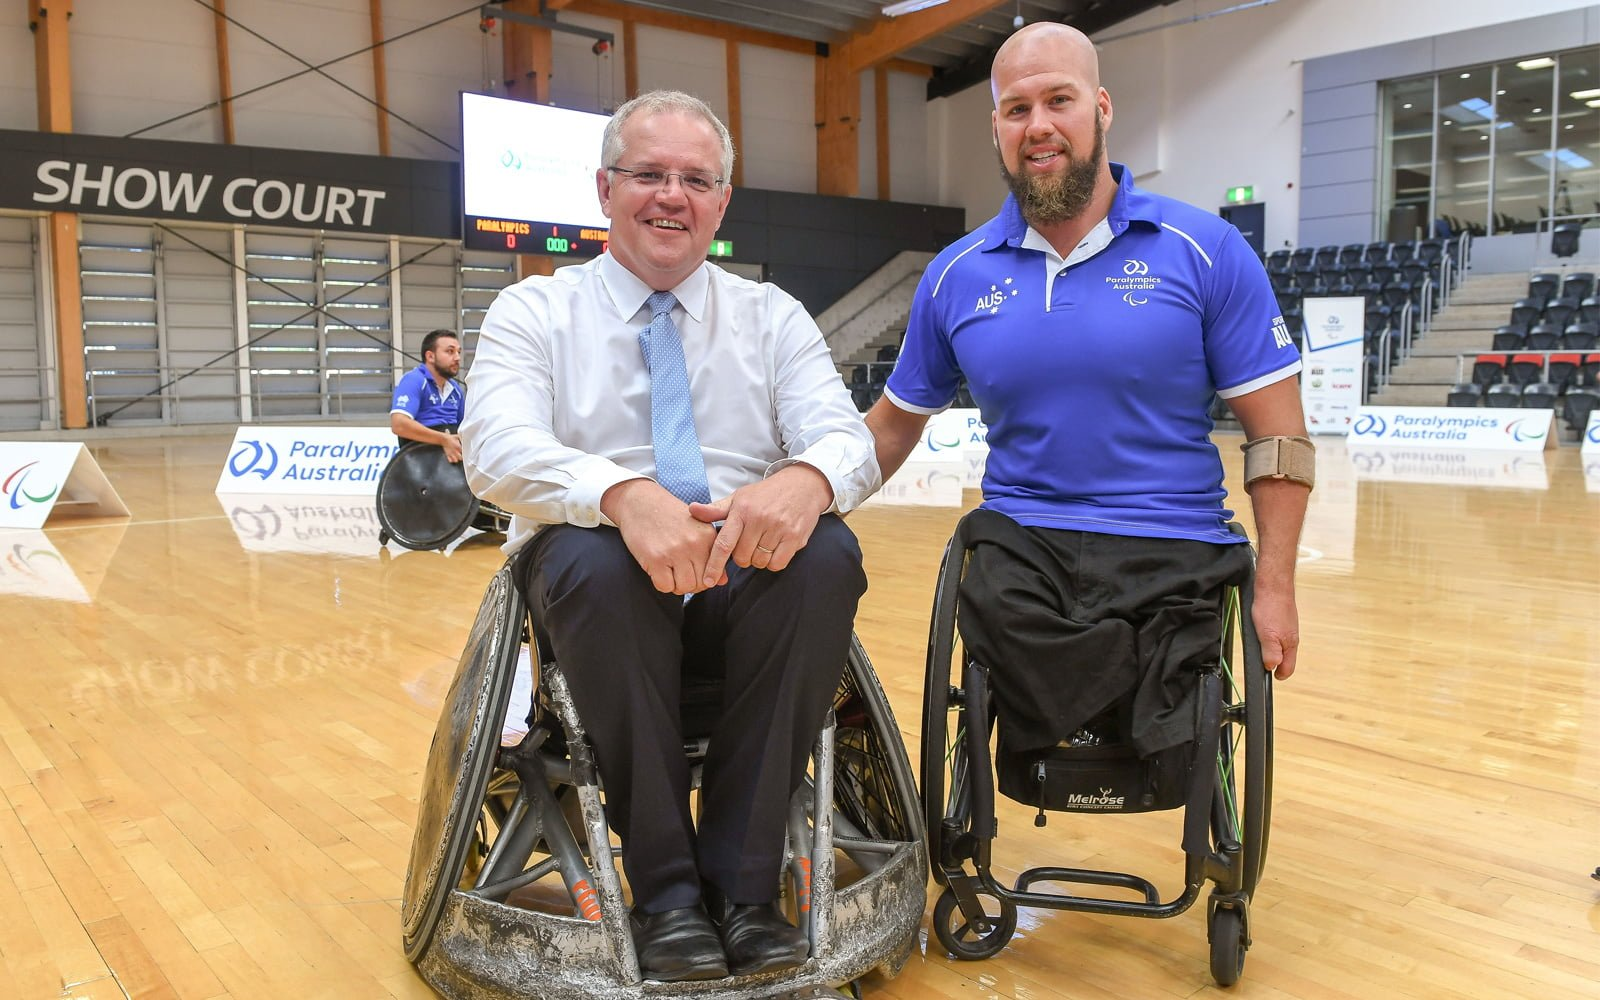 High Performance Investment applauded by Paralympics Australia